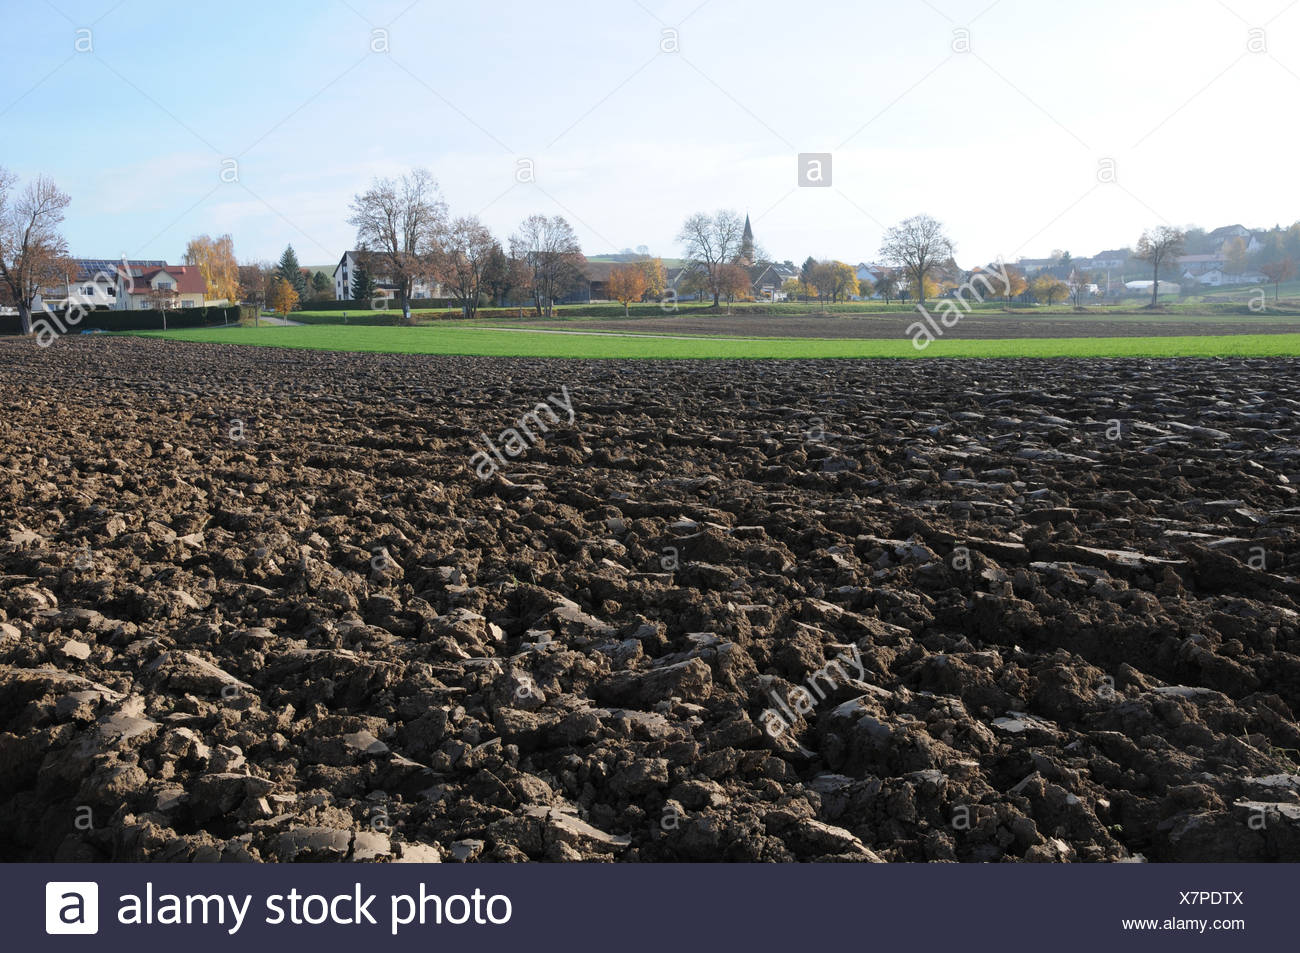 Ploughed Field - Stock Image